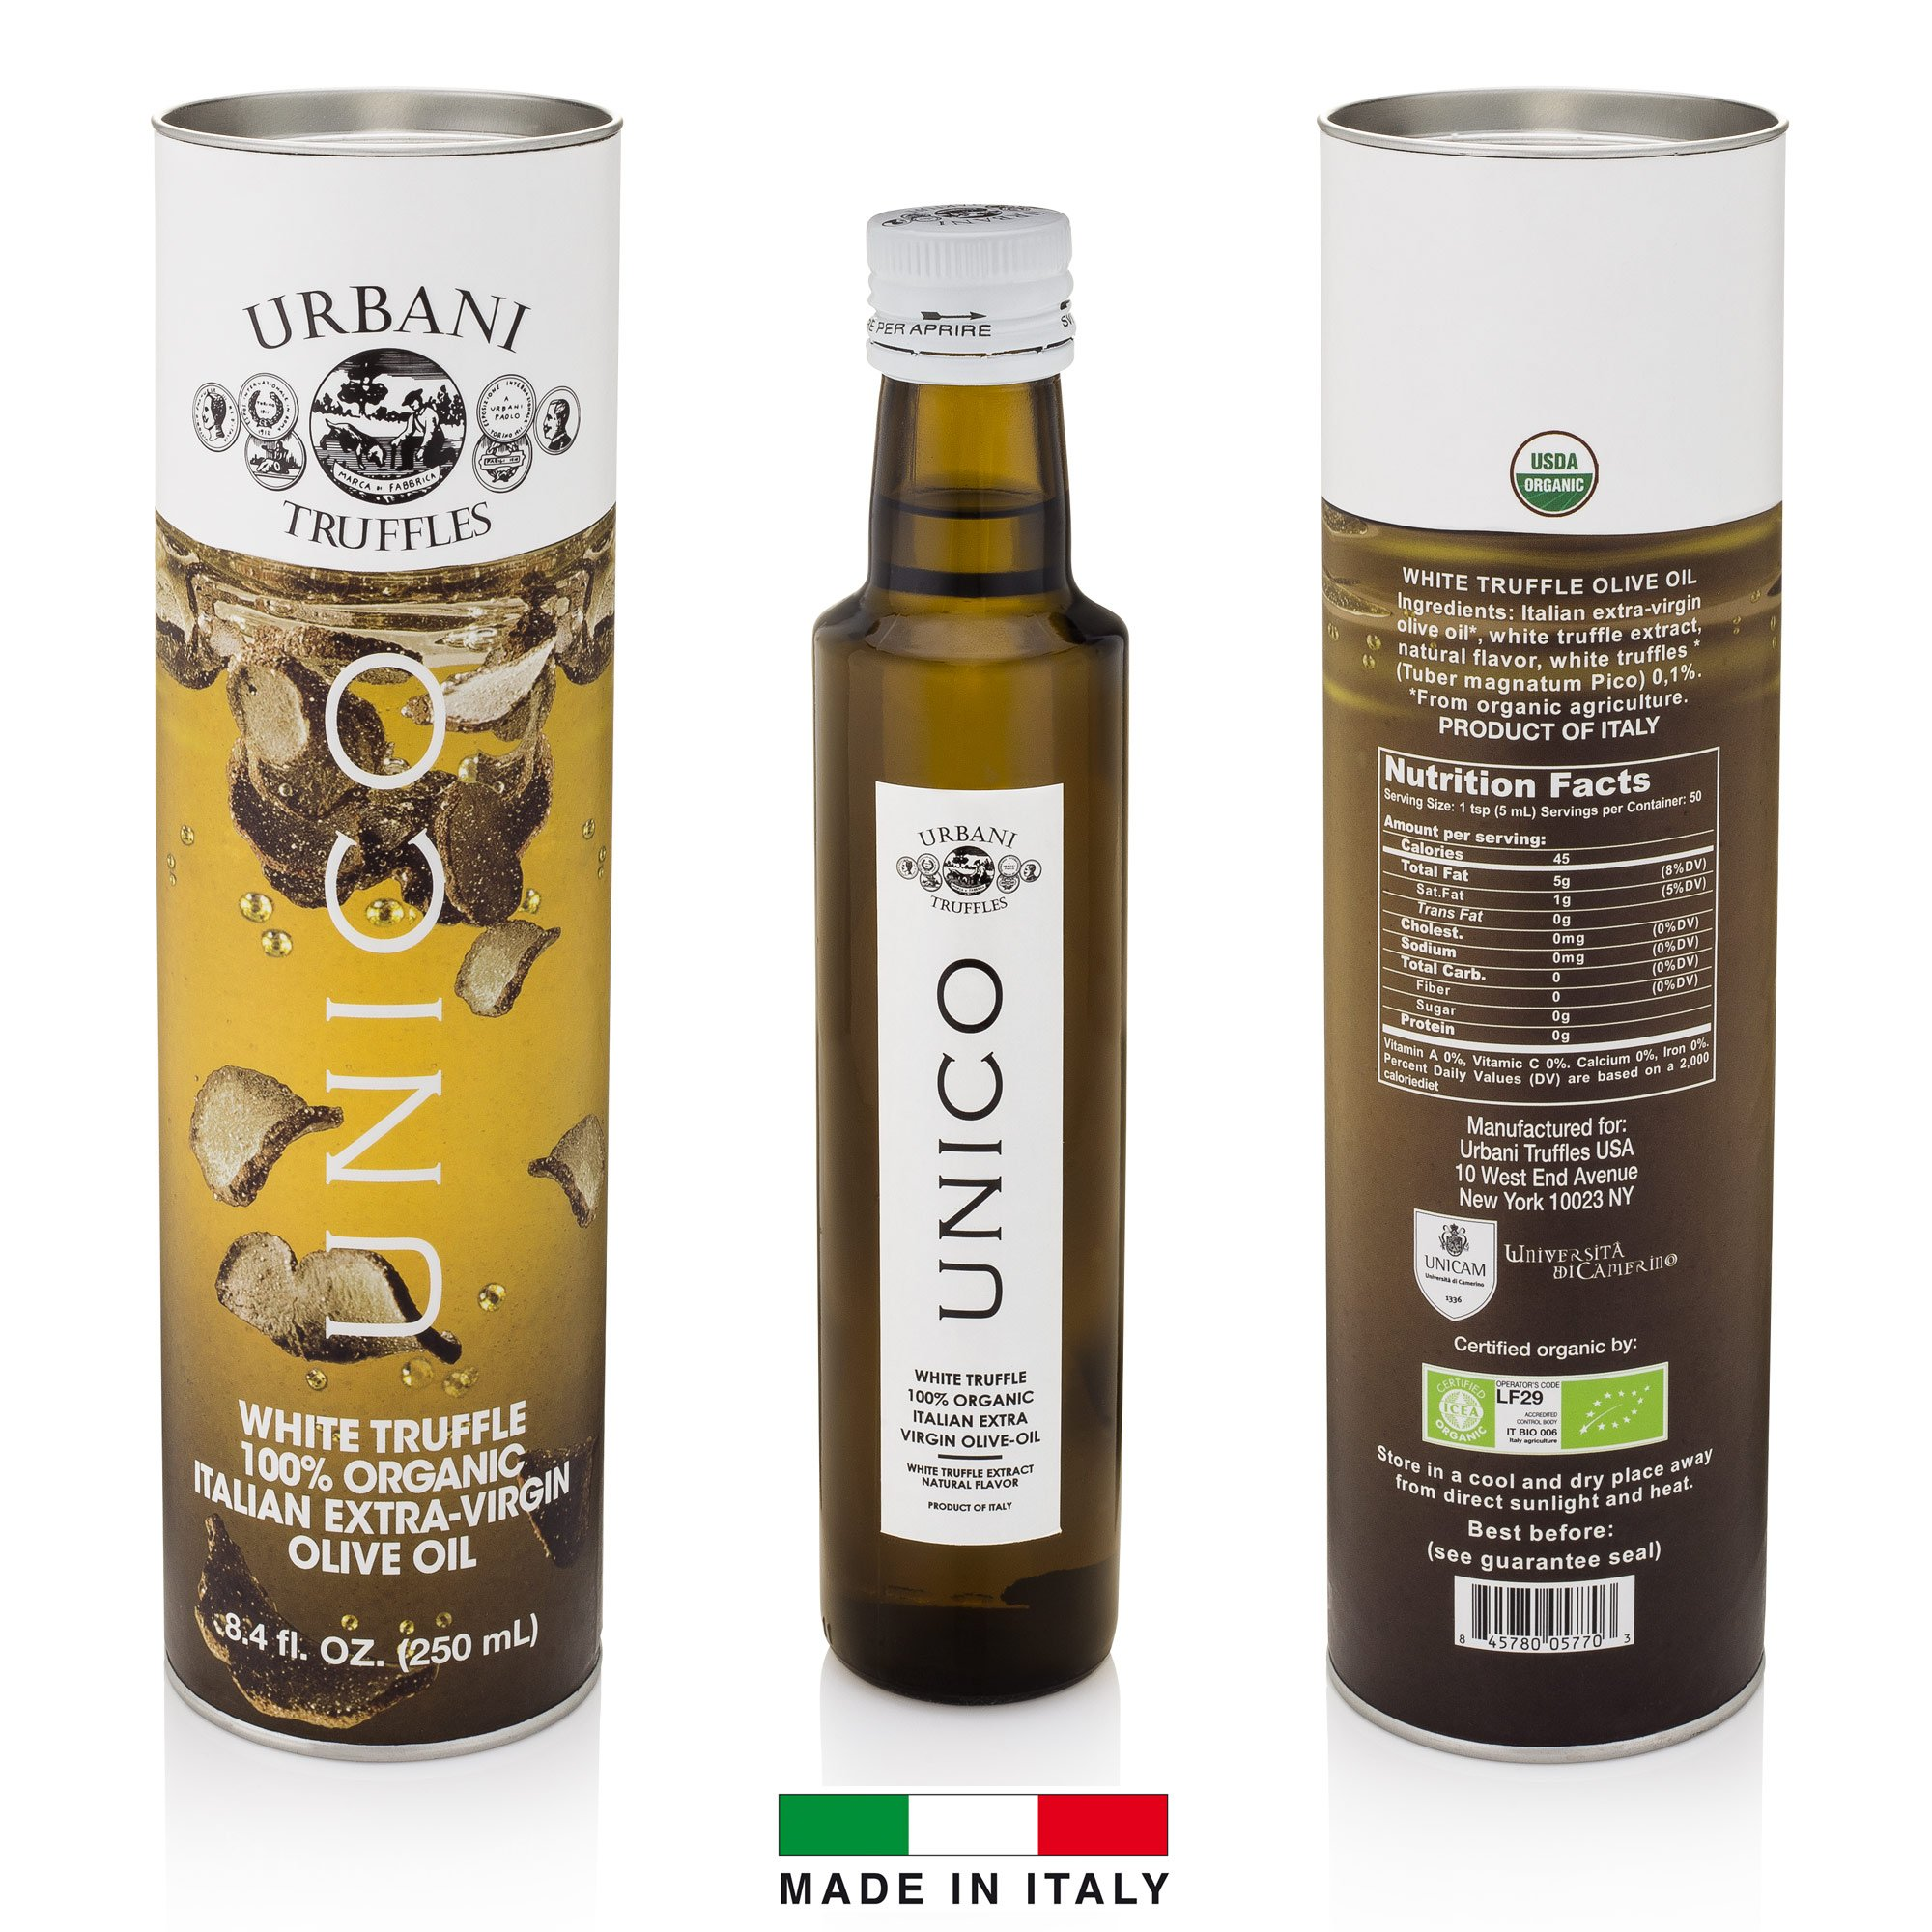 Italian White Truffle Extra Virgin Olive Oil - 8.4 Oz - by Urbani Truffles. Organic Truffle Oil 100% Made In Italy Without Chemicals And With Real Truffle Pieces Inside The Bottle. No Artificial Aroma by Urbani Truffles